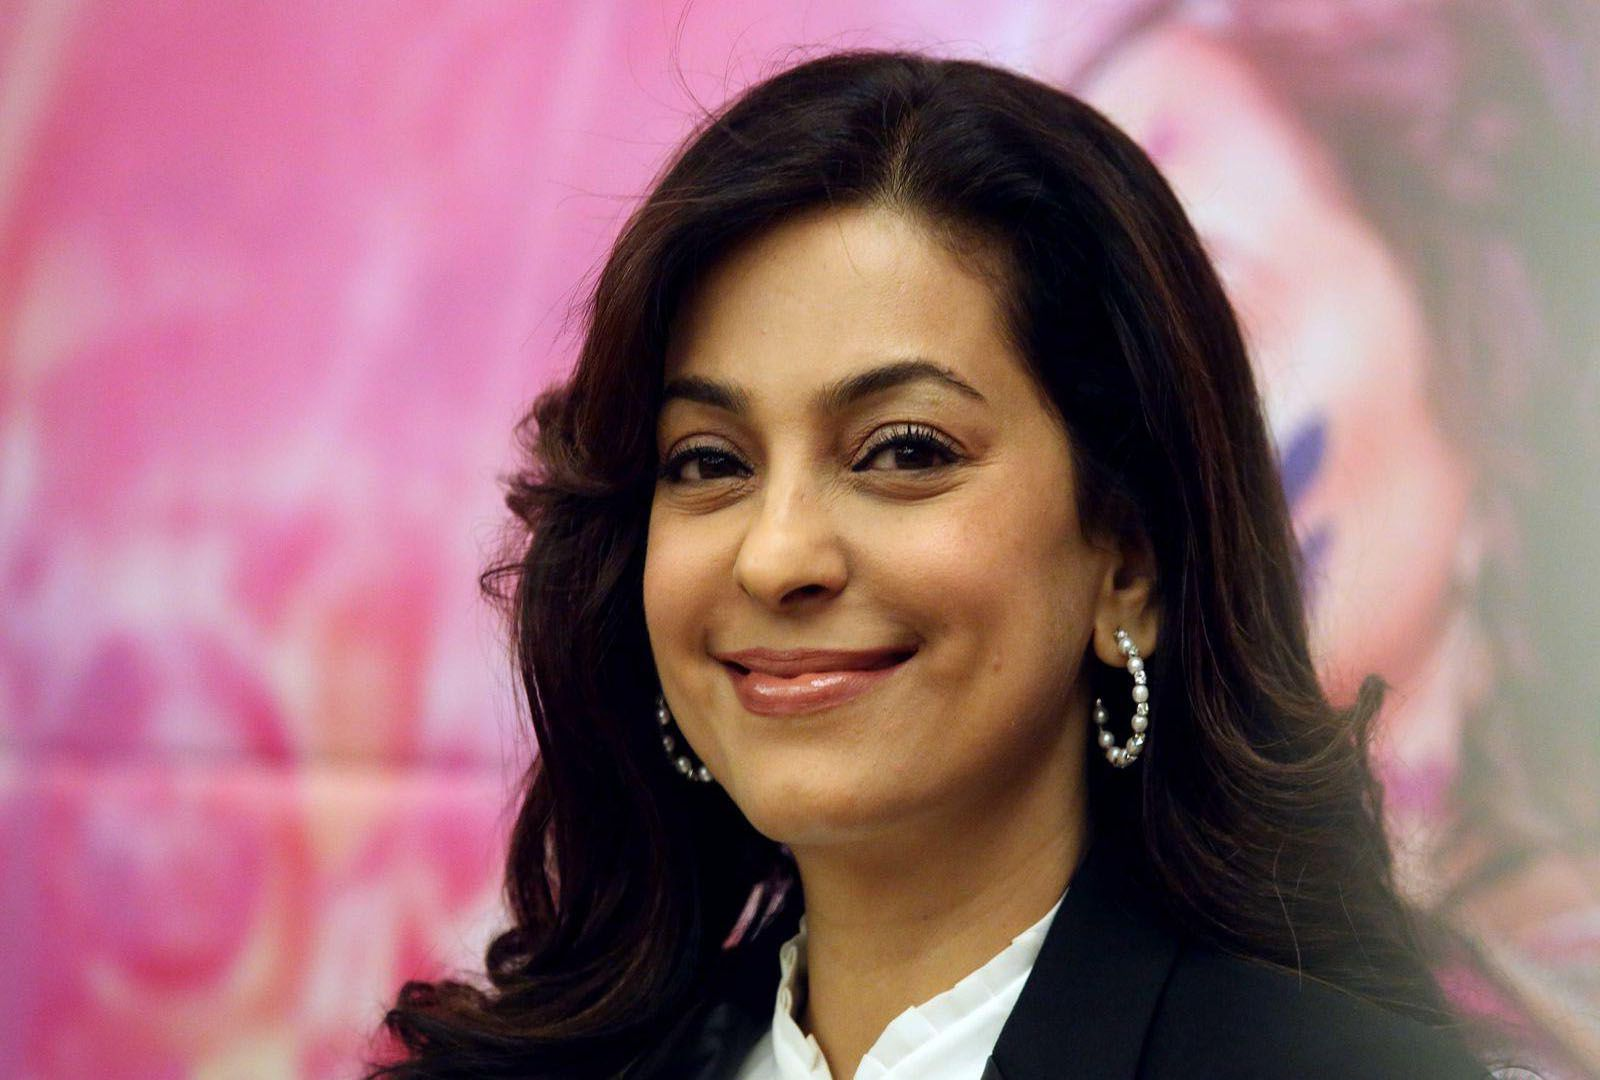 Juhi chawla latest hd wallpapers download wallpaper juhi chawla hd wallpaper all u stars wallpaper juhi chawla hd wallpapers wallpapers thecheapjerseys Images